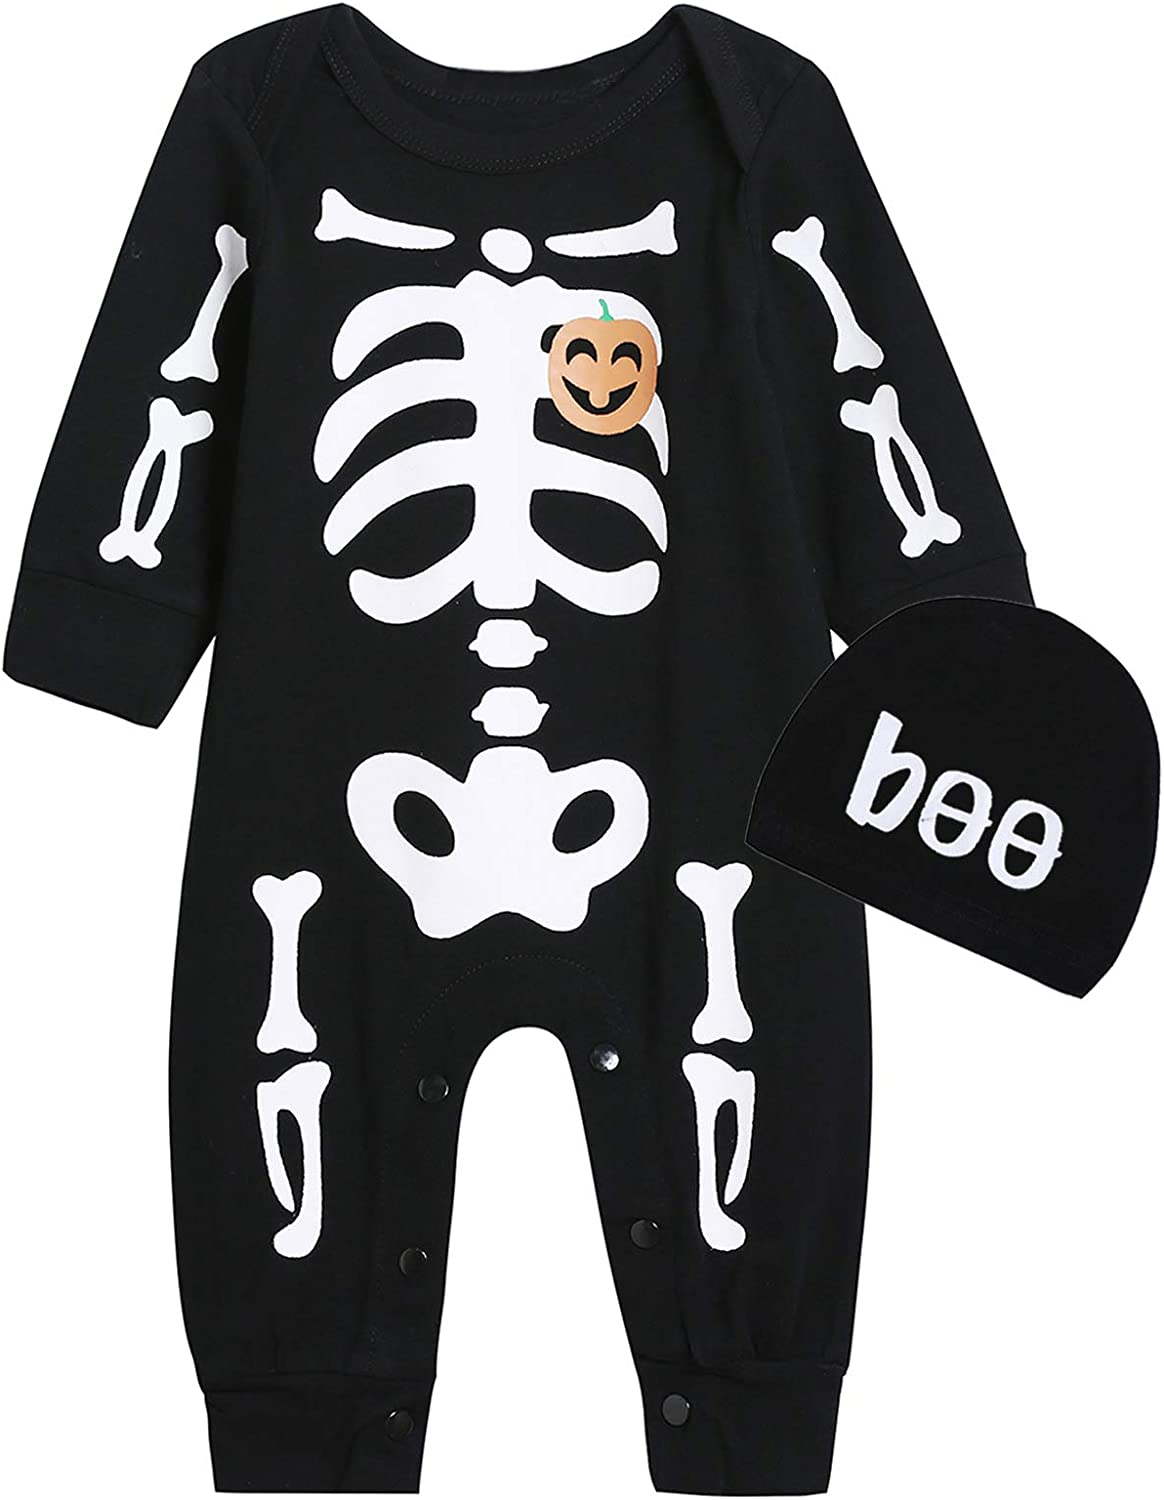 Singcoco Baby Boy Girl Halloween Outfit It is very Special Campaign popular Newborn Costume Skeleton